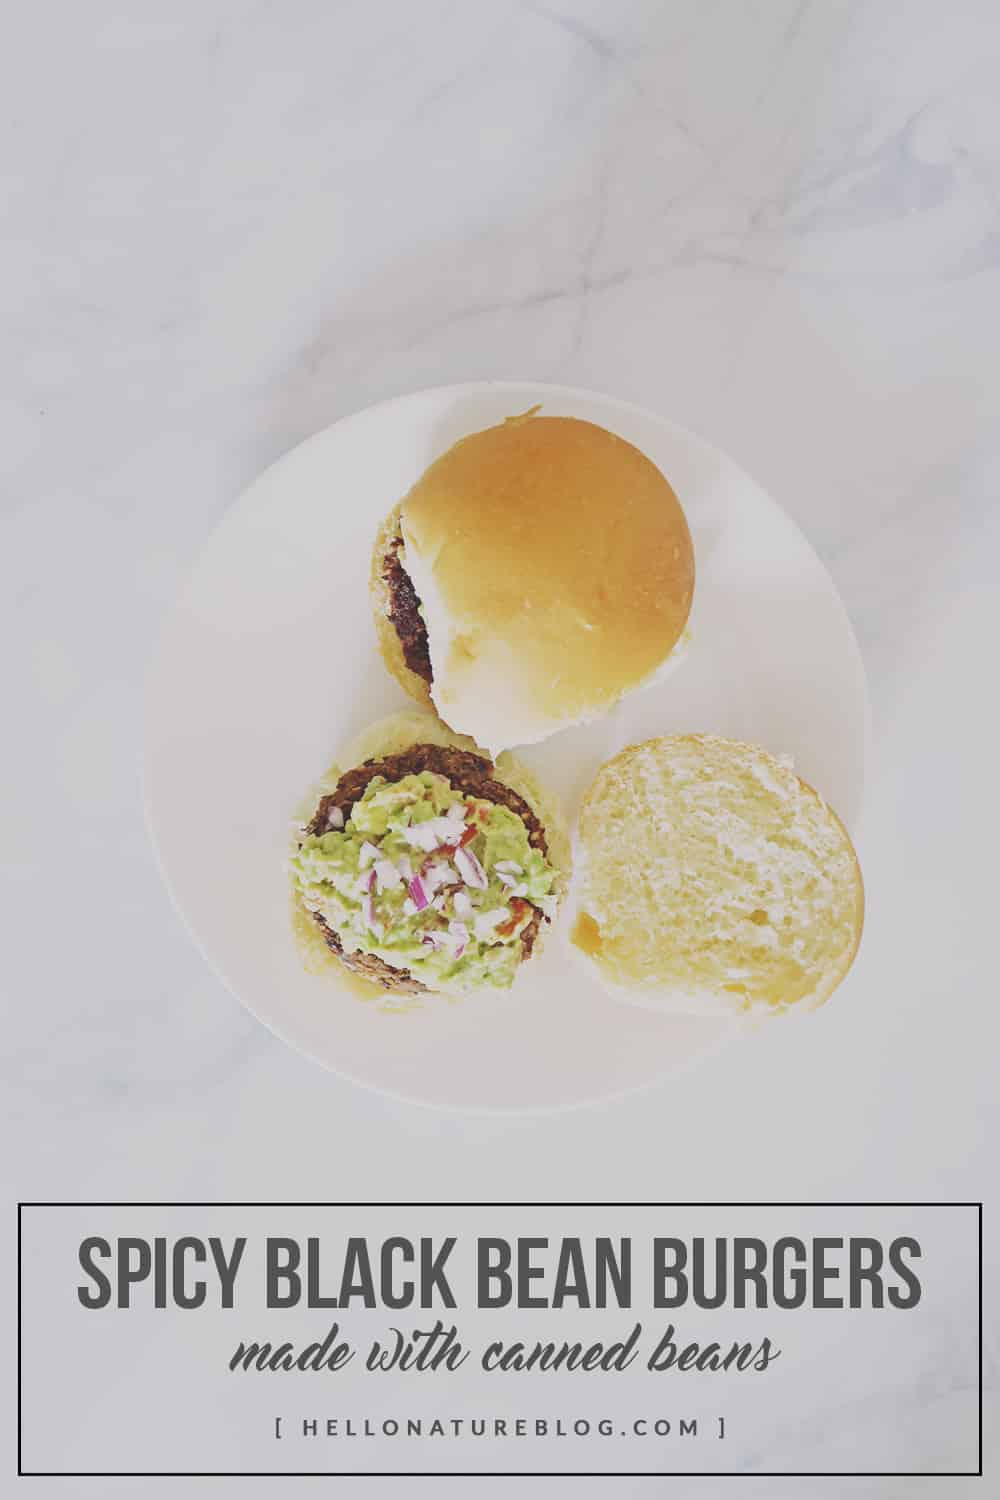 Add a little bit of zest to your life with this spicy black bean burger recipe. Made with canned beans and simple pantry ingredients!